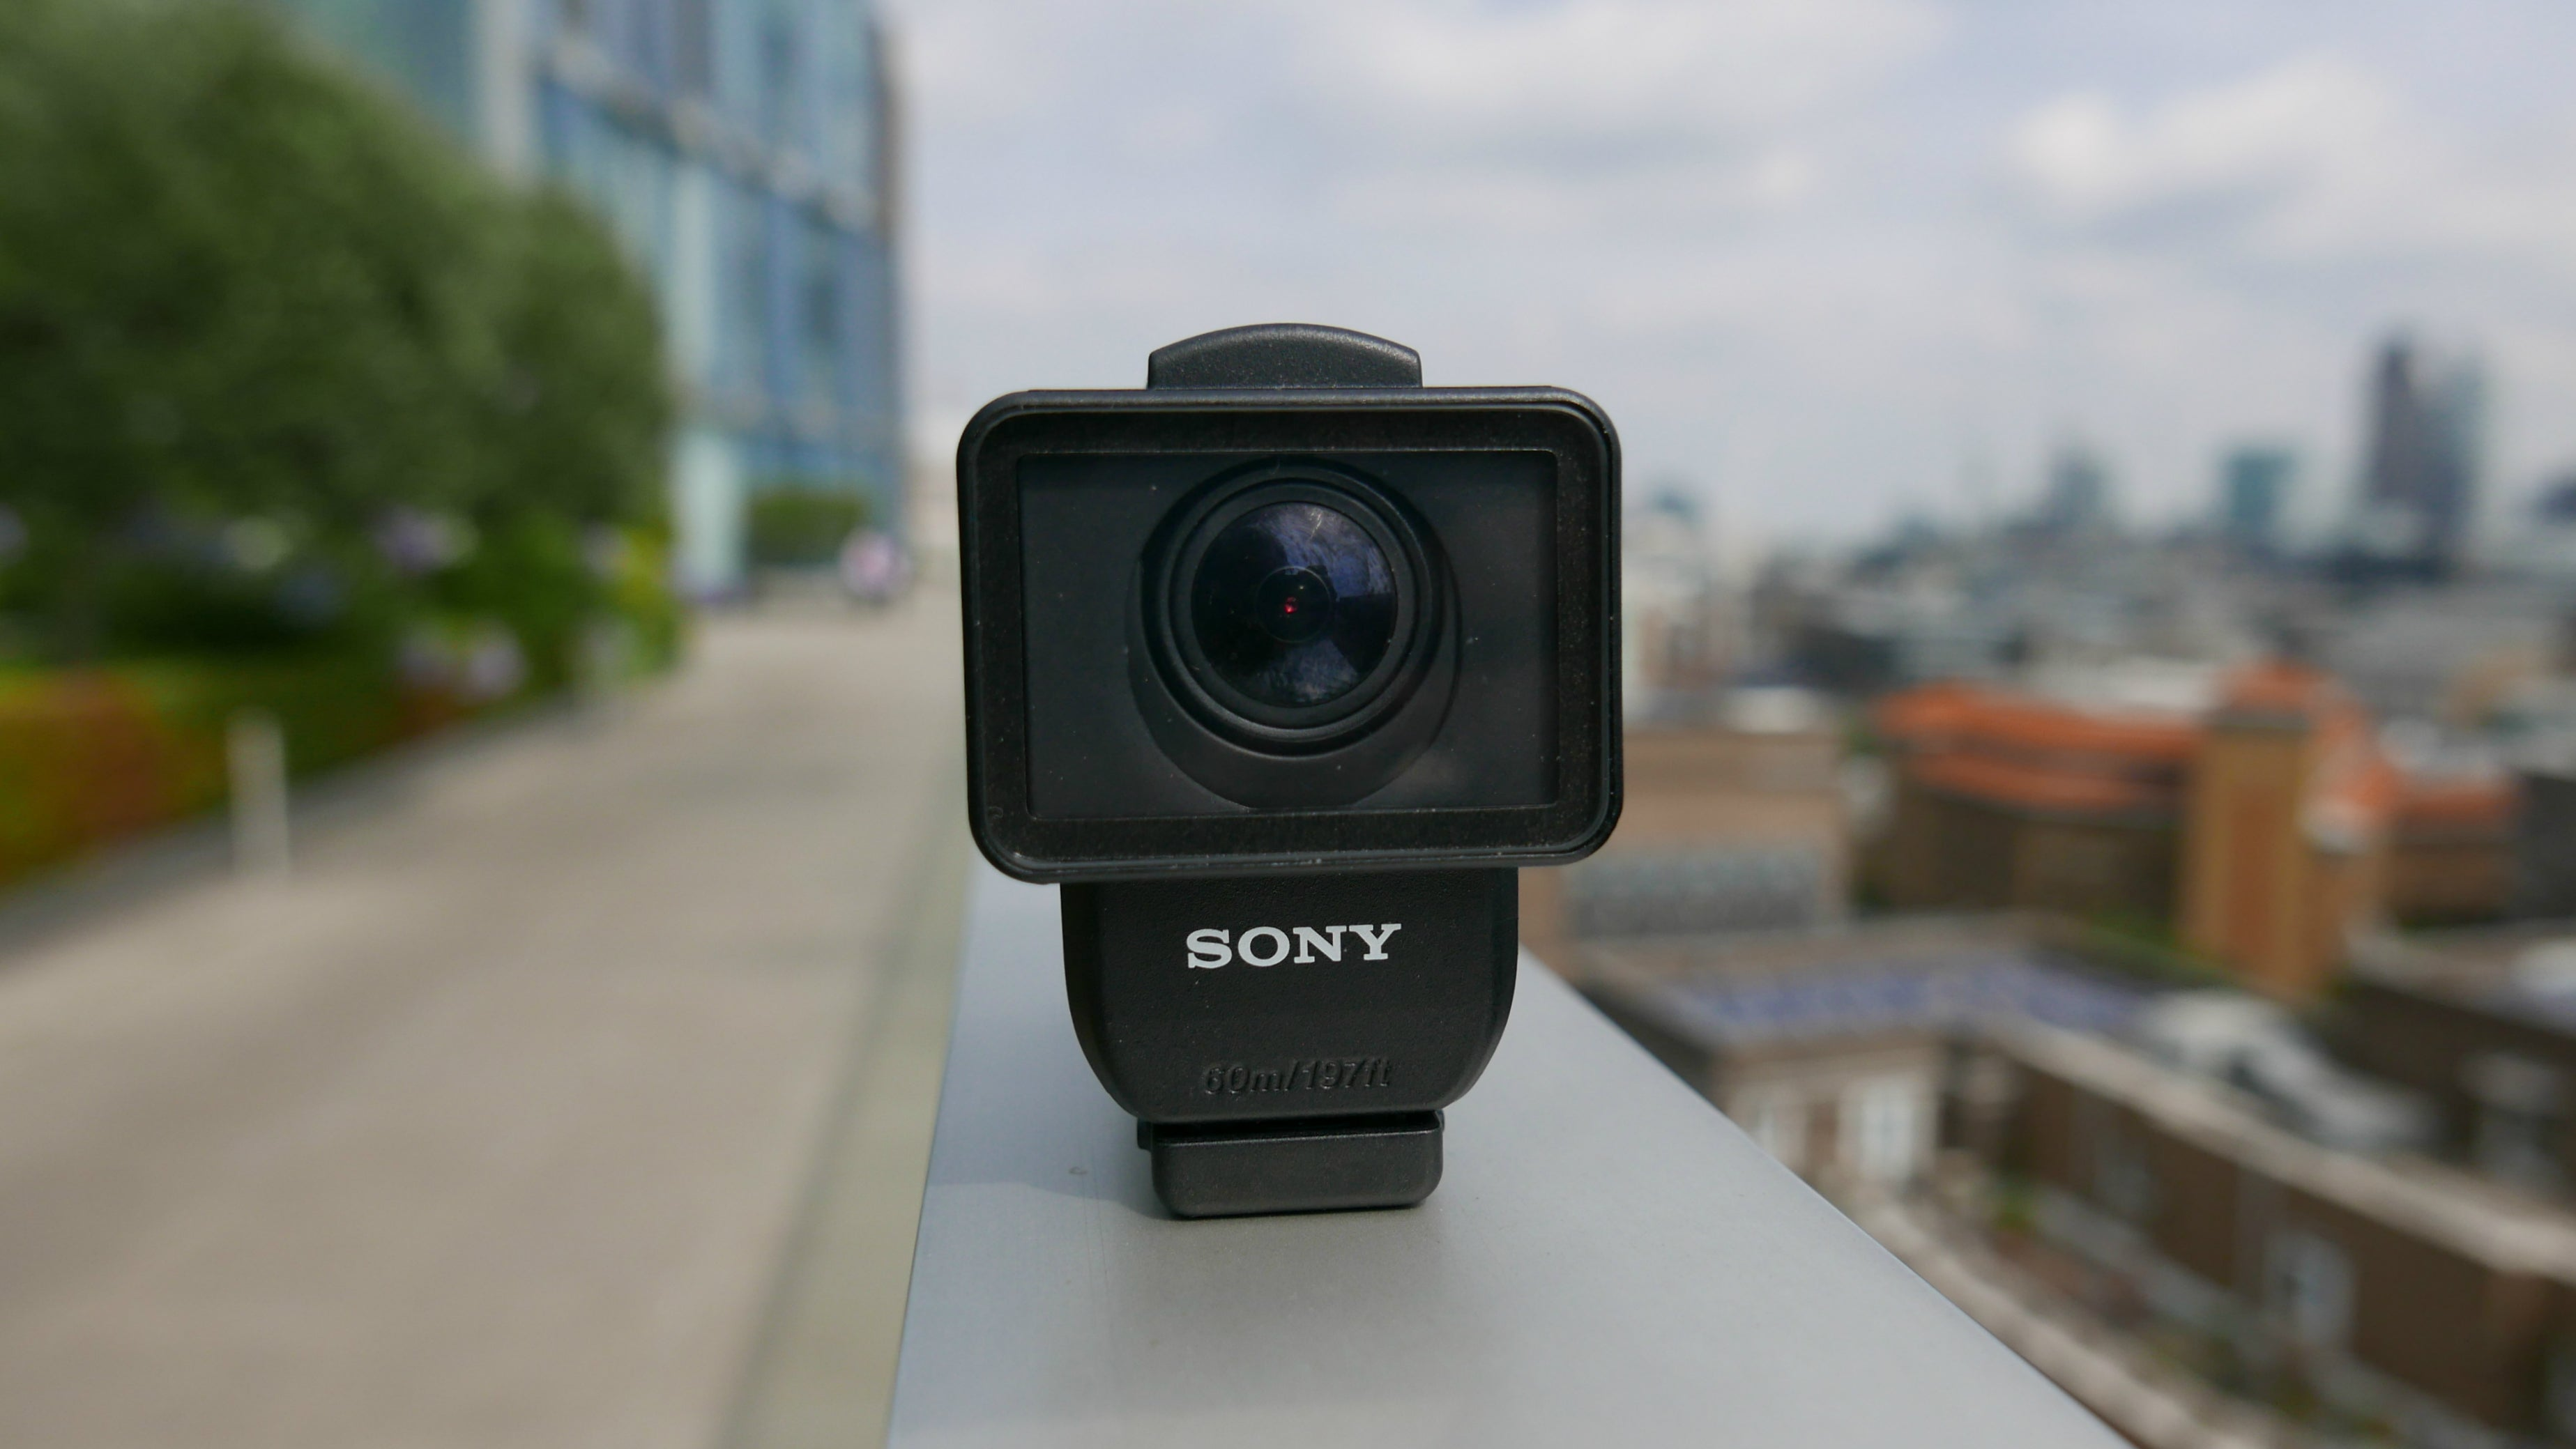 Sony Hdr As50 Action Cam Review Trusted Reviews